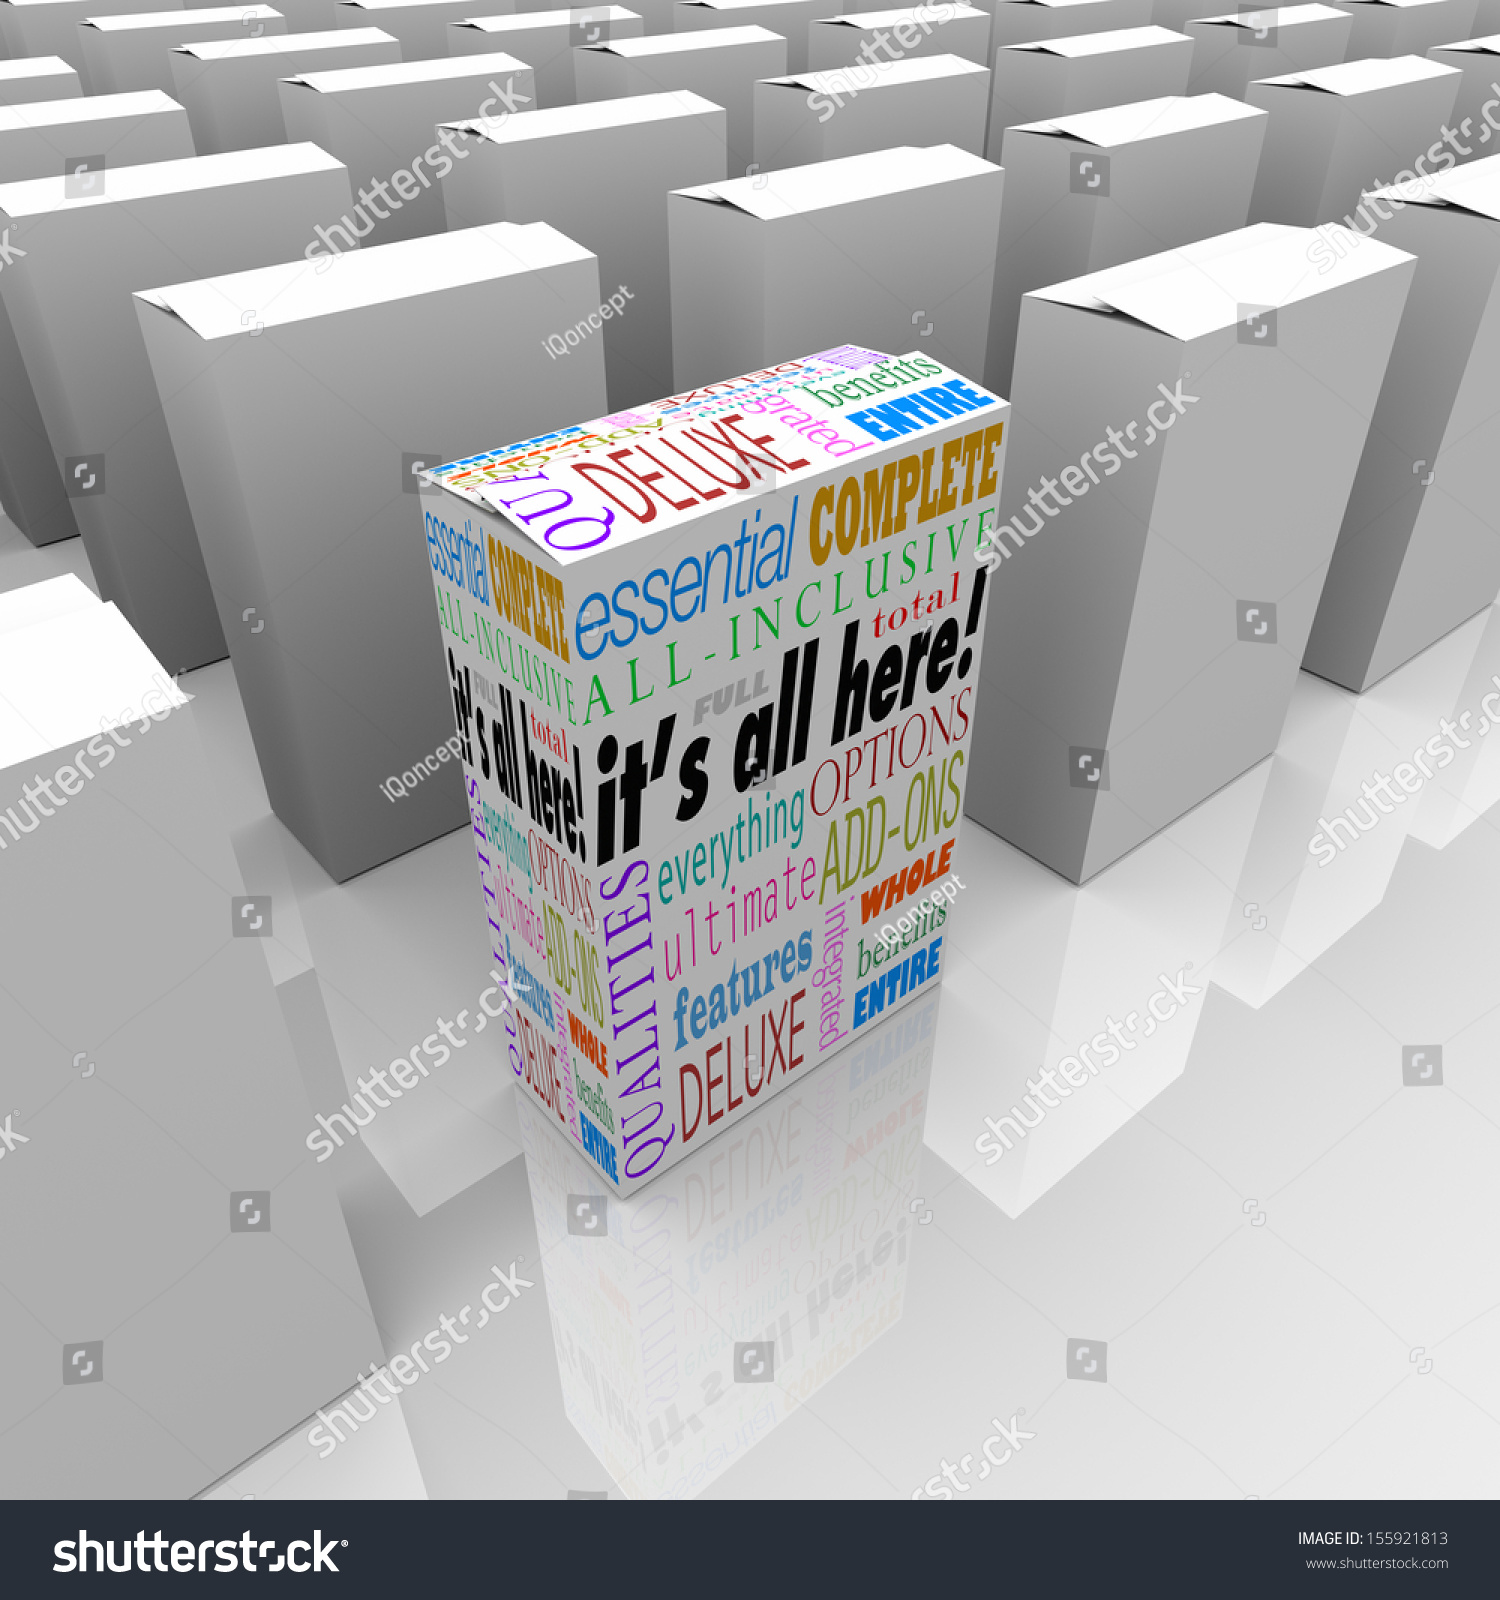 All here words on box product stock illustration 155921813 its all here words on a box or product package standing out as the best on buycottarizona Gallery